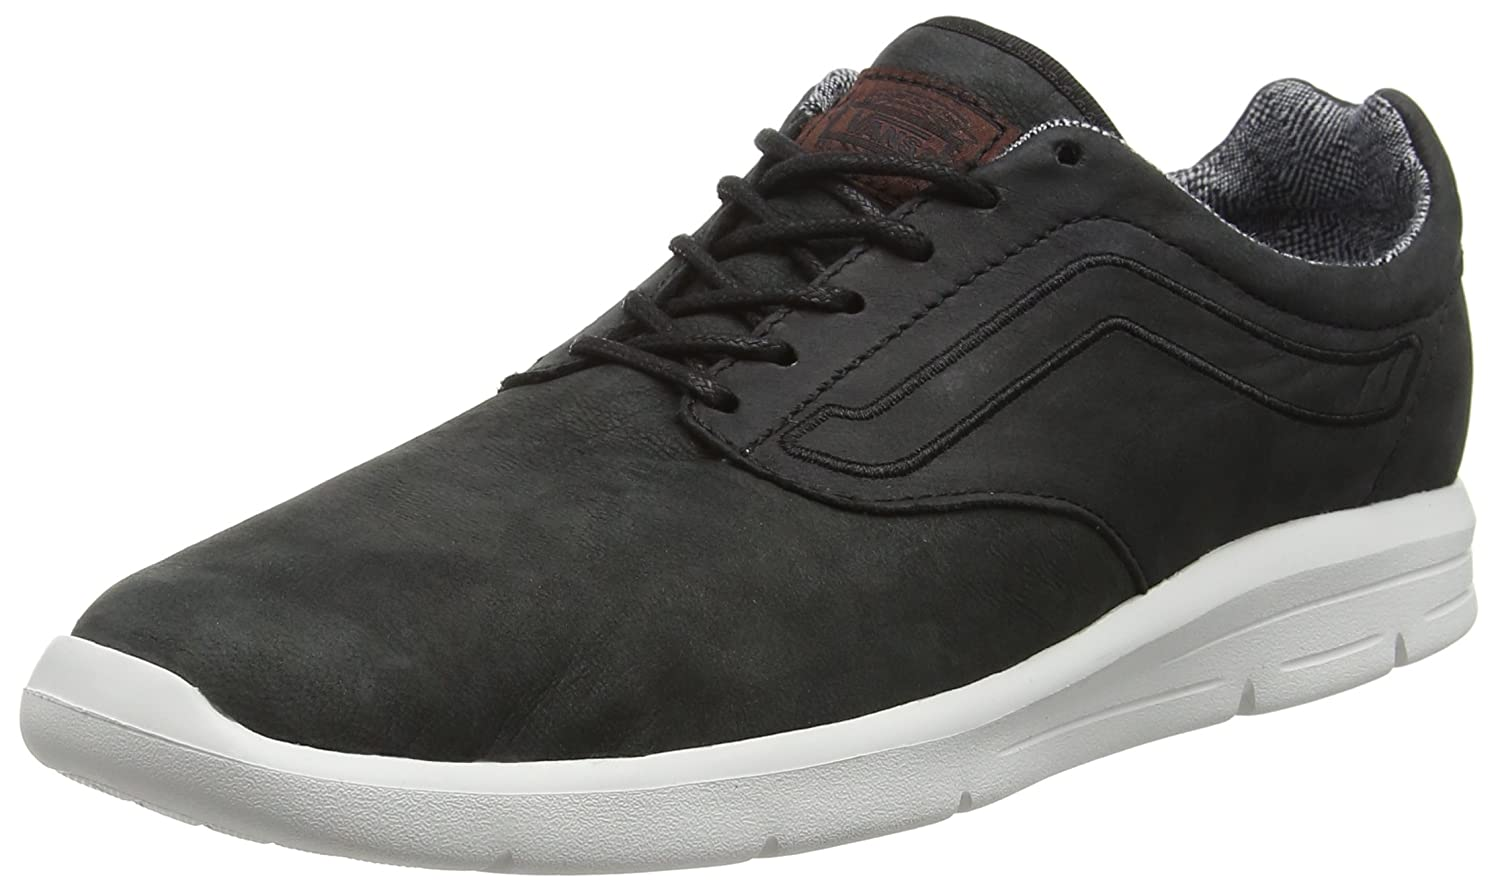 Vans ISO 1.5, Zapatillas Unisex Adulto 45 EU|Negro (Suiting Black/Blanc de Blanc)